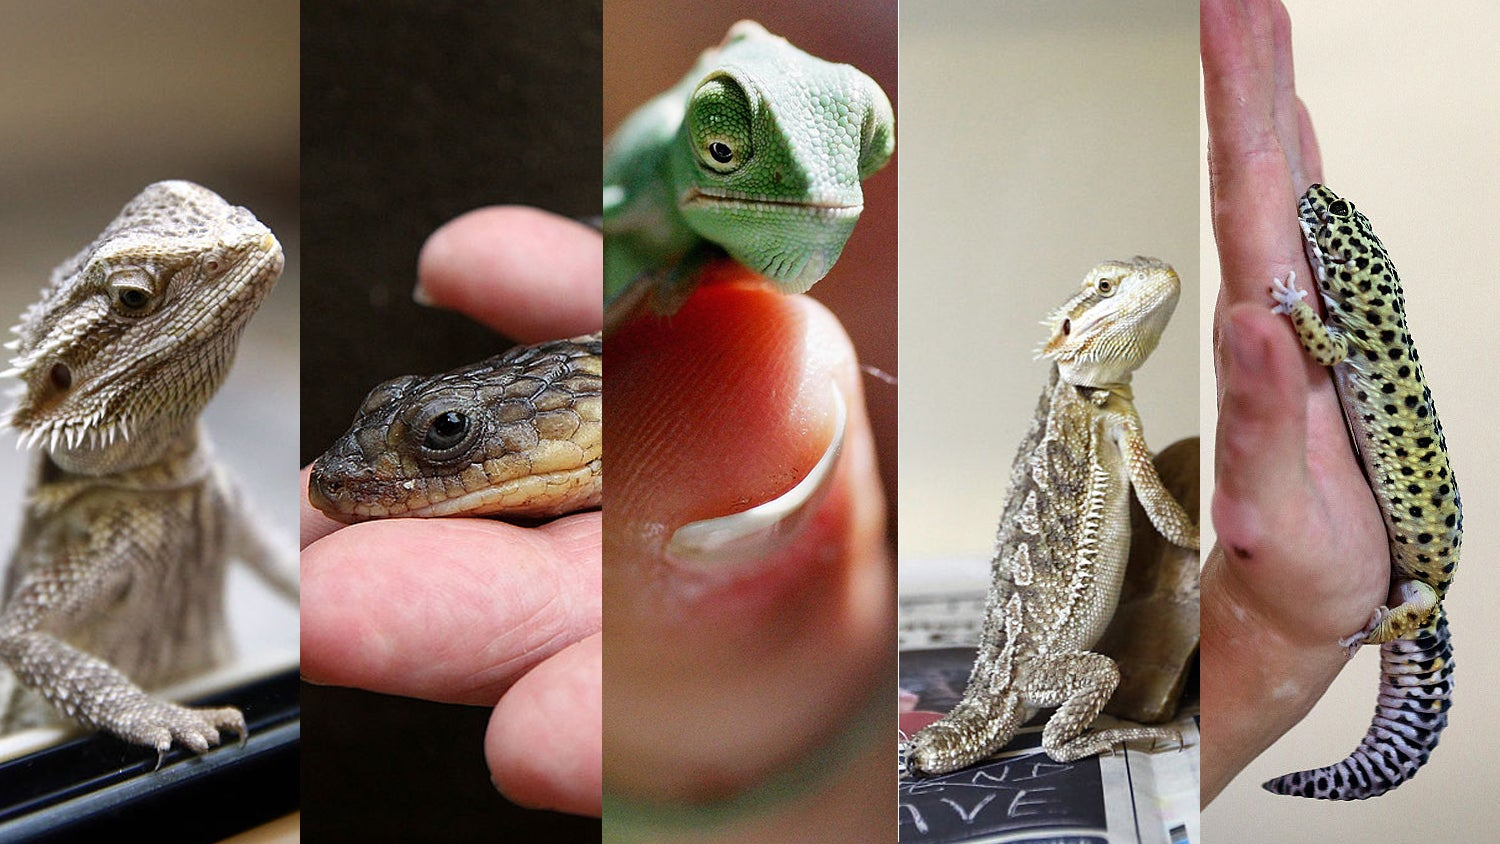 Global Warming Is A Major Threat To Our Overlords, The Lizards